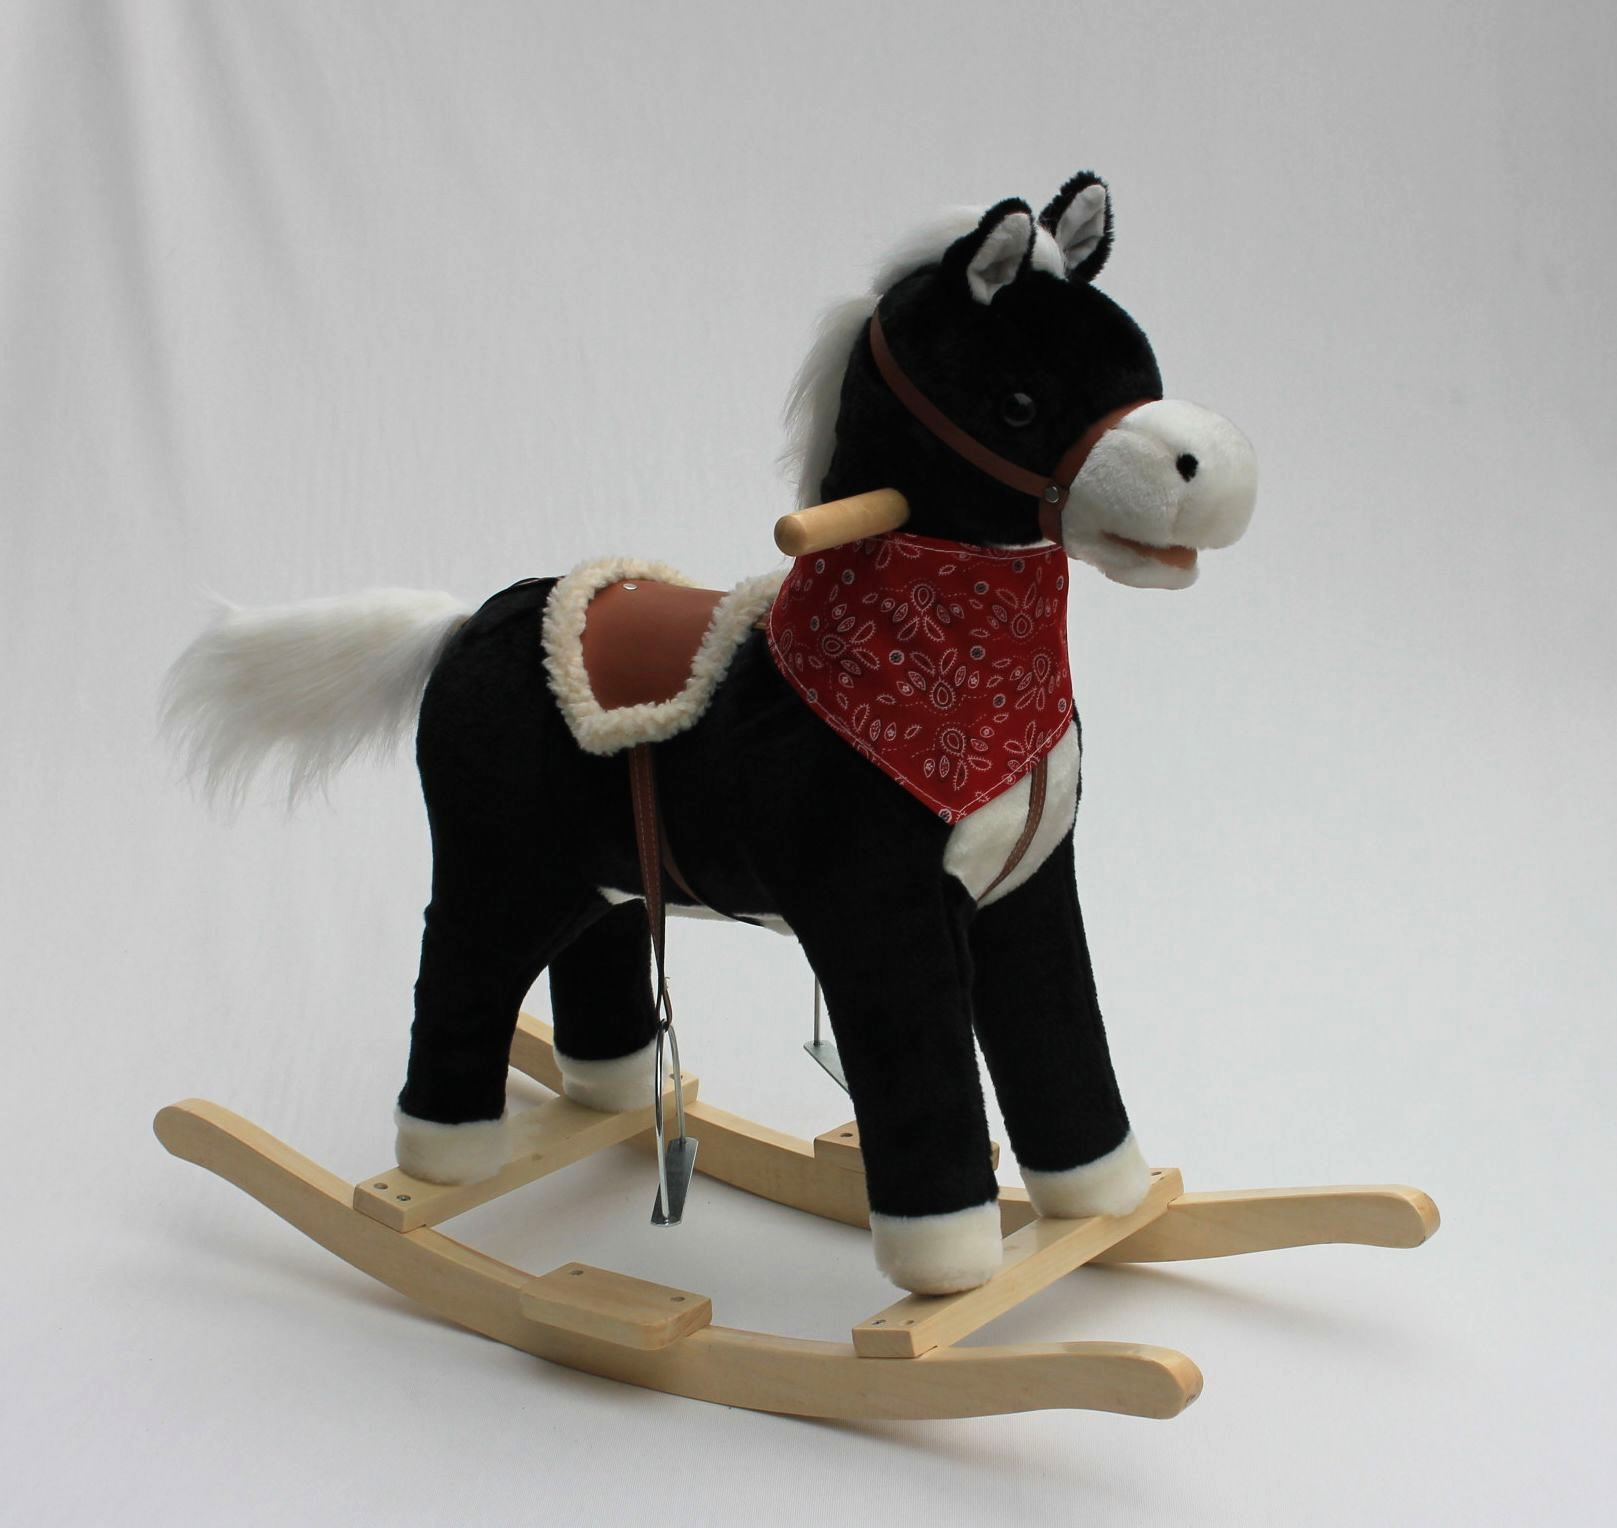 78x28x68cm promotional customized children black plush rocking pony toy with red triangle scarf&wooden base